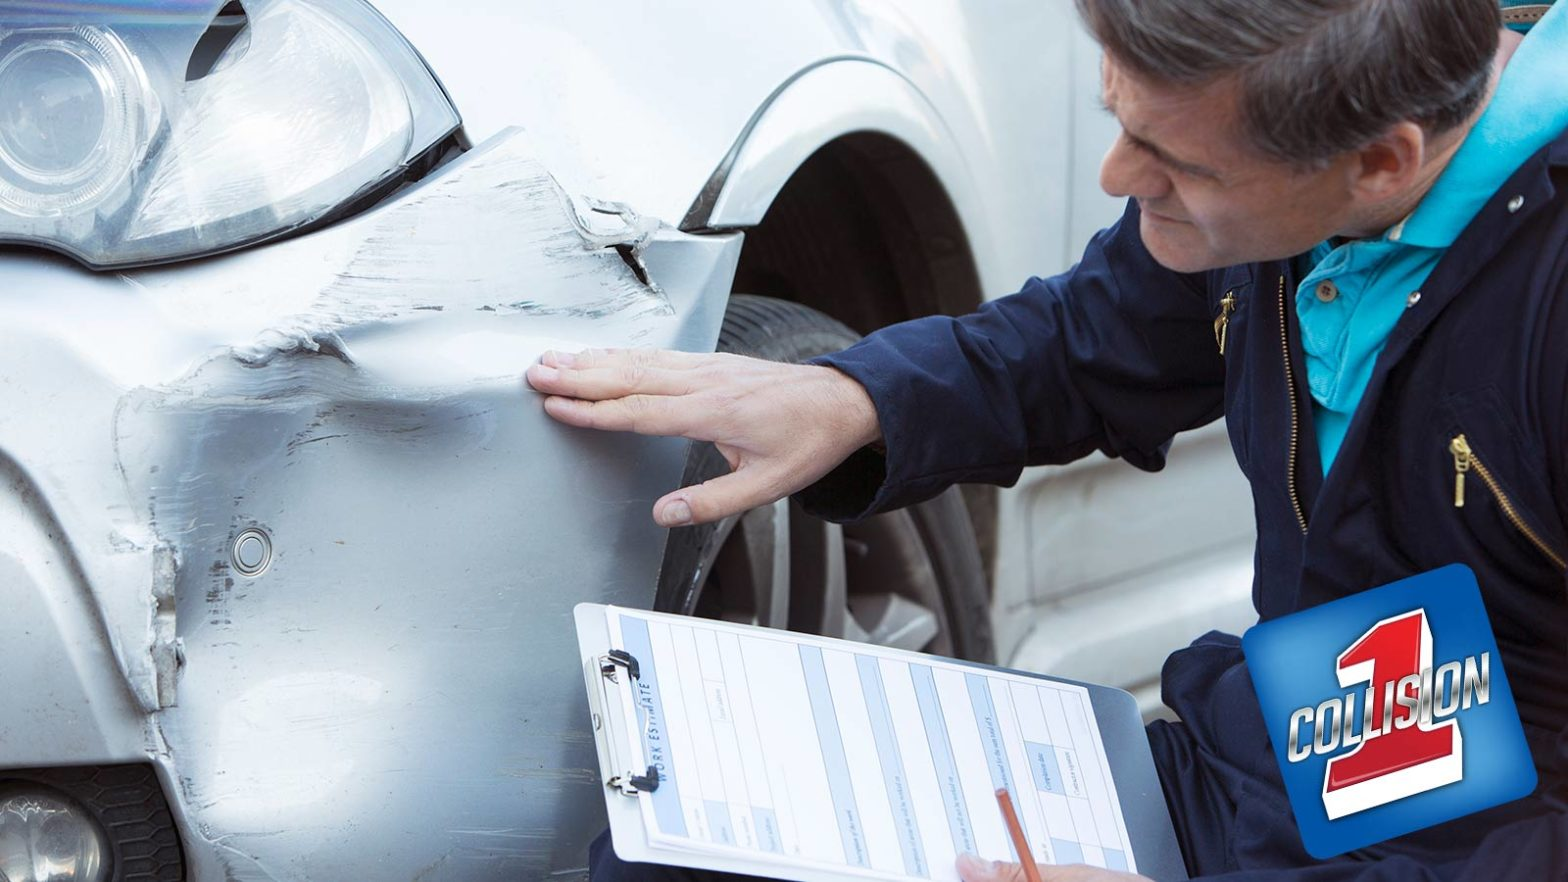 Man inspecting auto body damage holding a clip board while preparing an estimate after a collision.